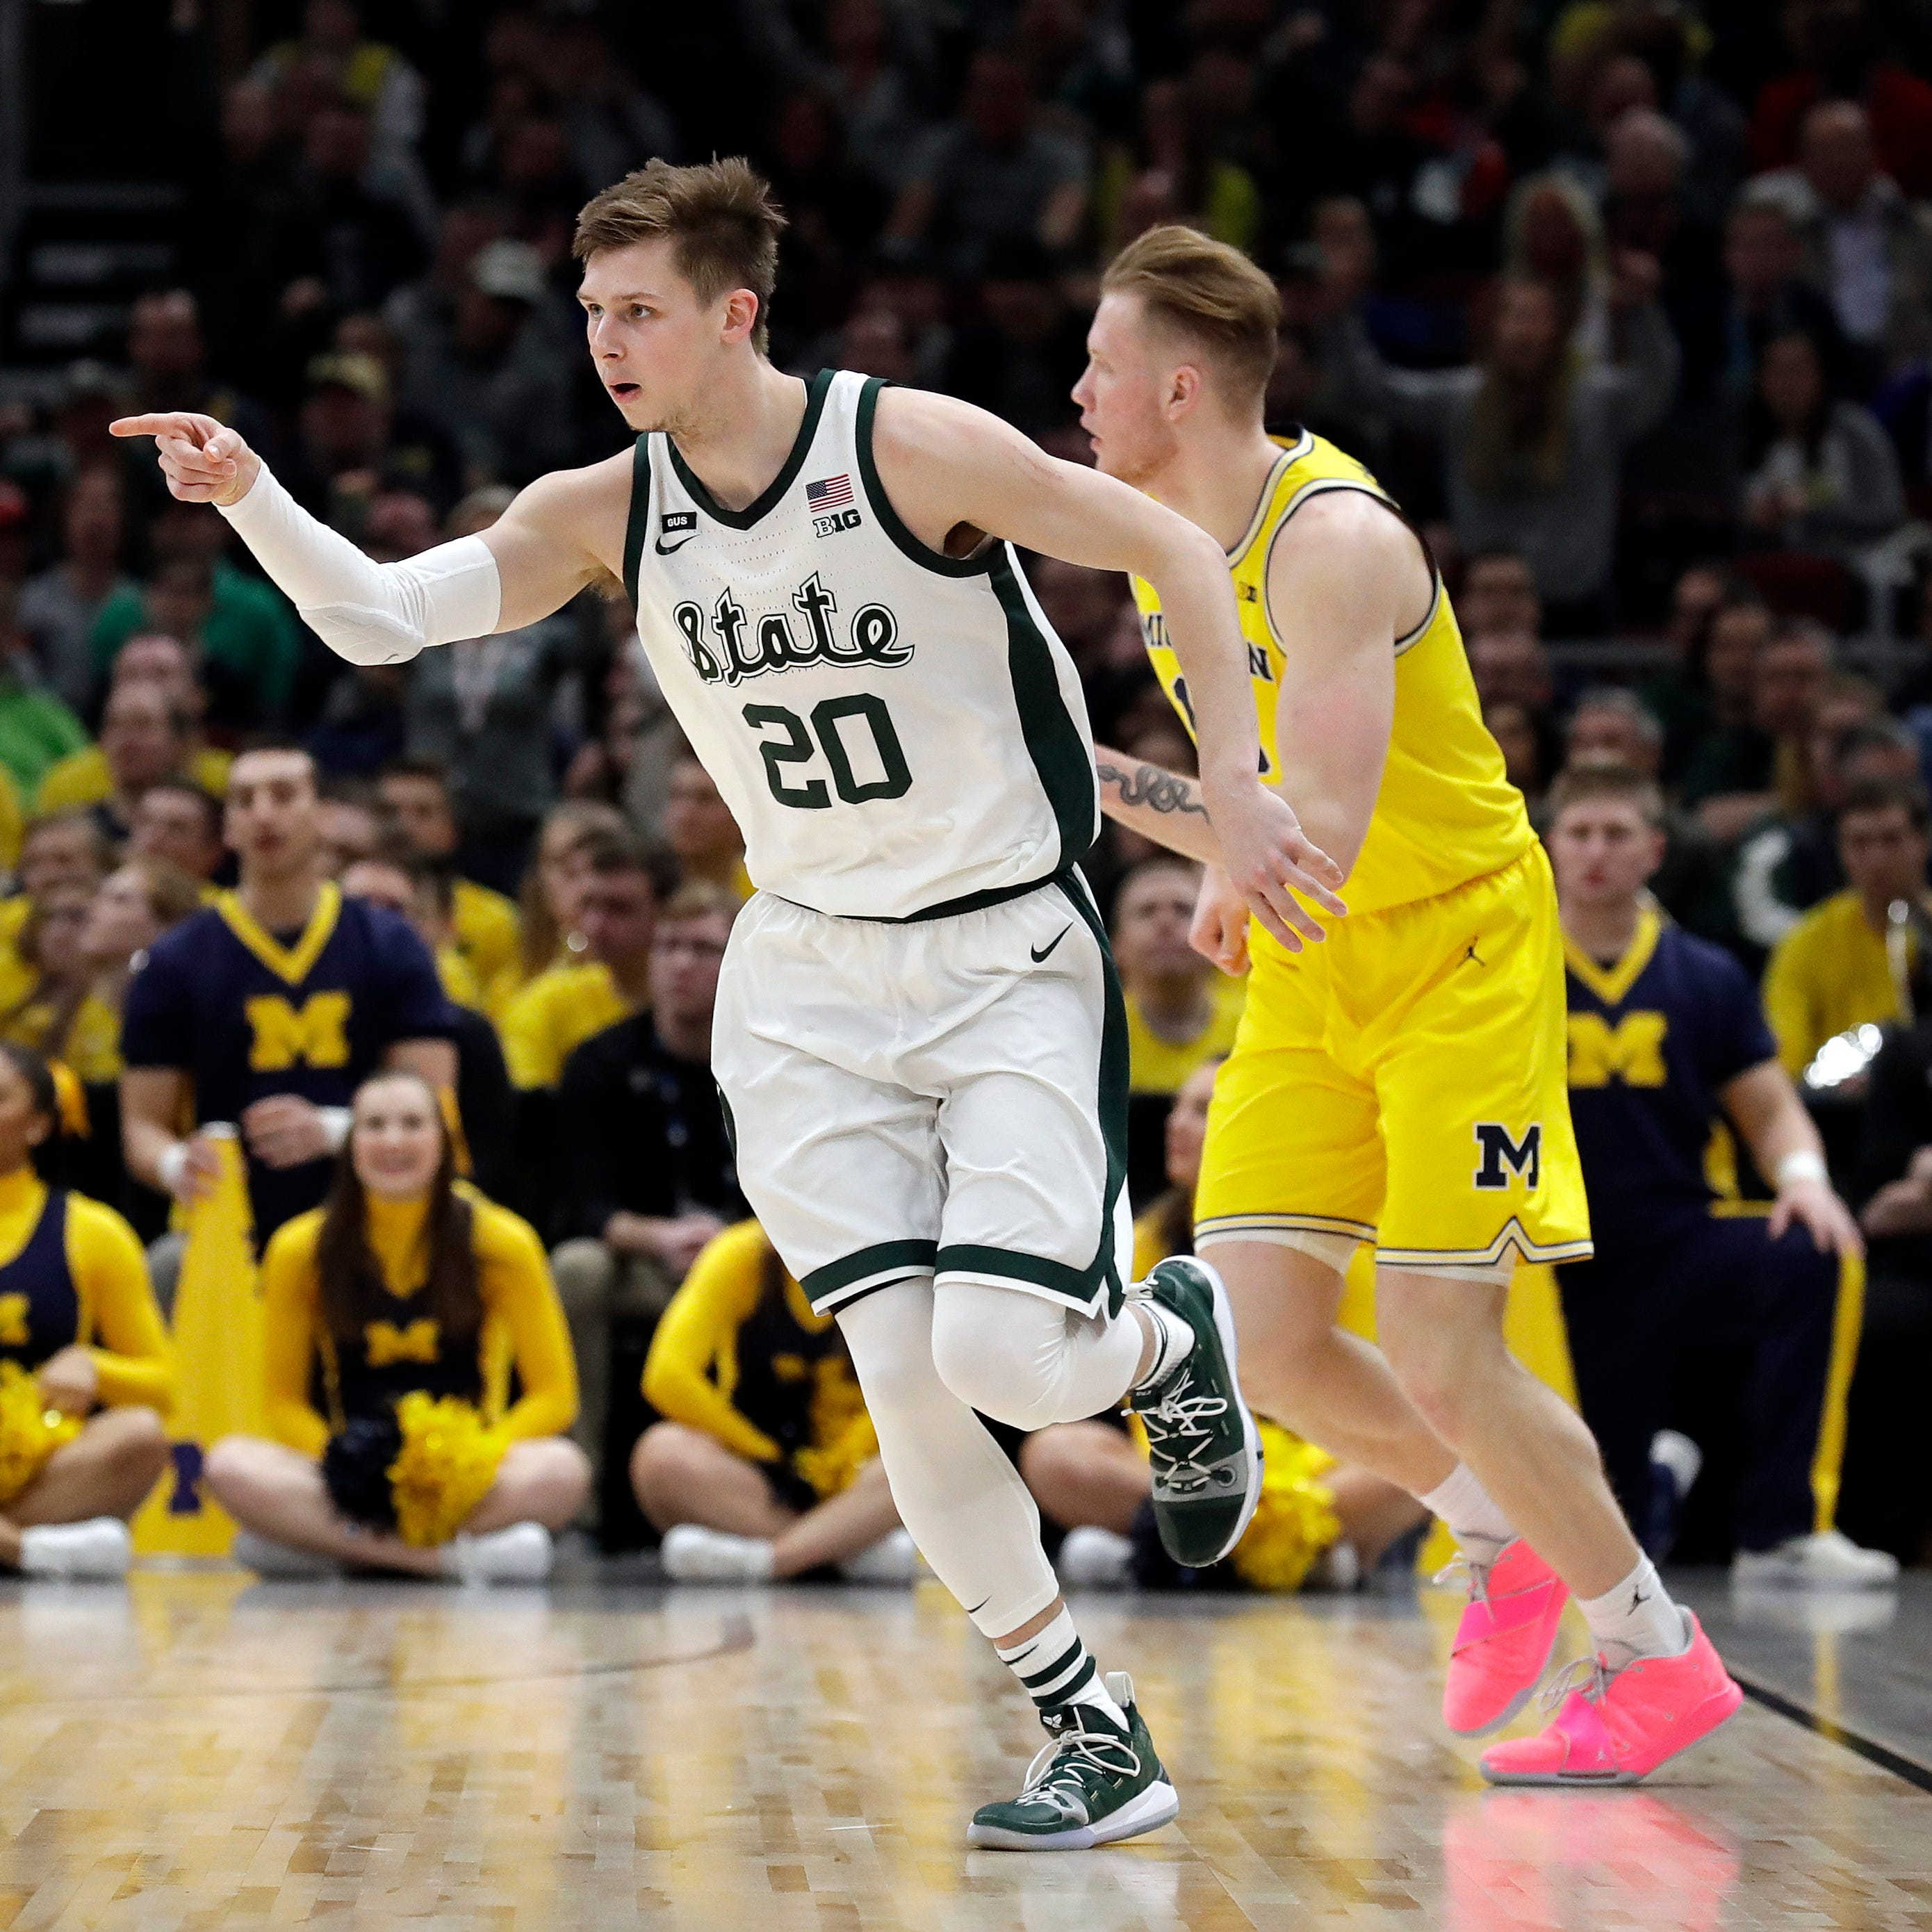 'We just stuck together': McQuaid, Winston power Michigan State to Big Ten tournament title